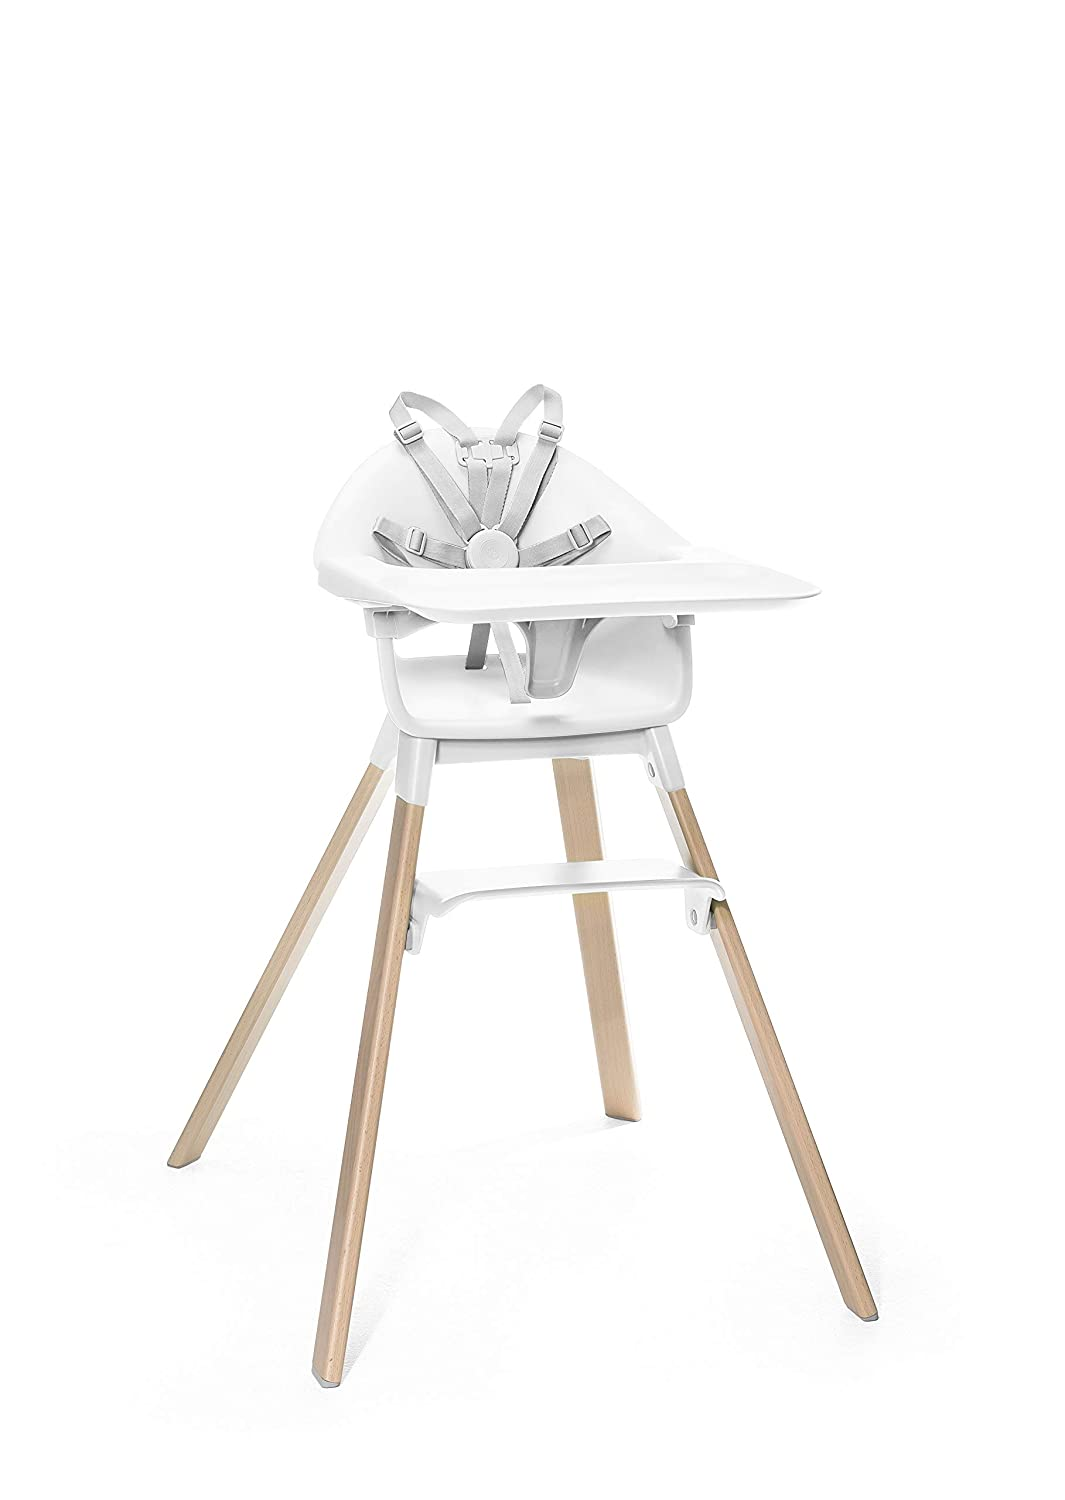 Stokke Clikk Easy to Clean White Baby High Chair with Natural Legs, All in One Box (Includes Tray and Harness)